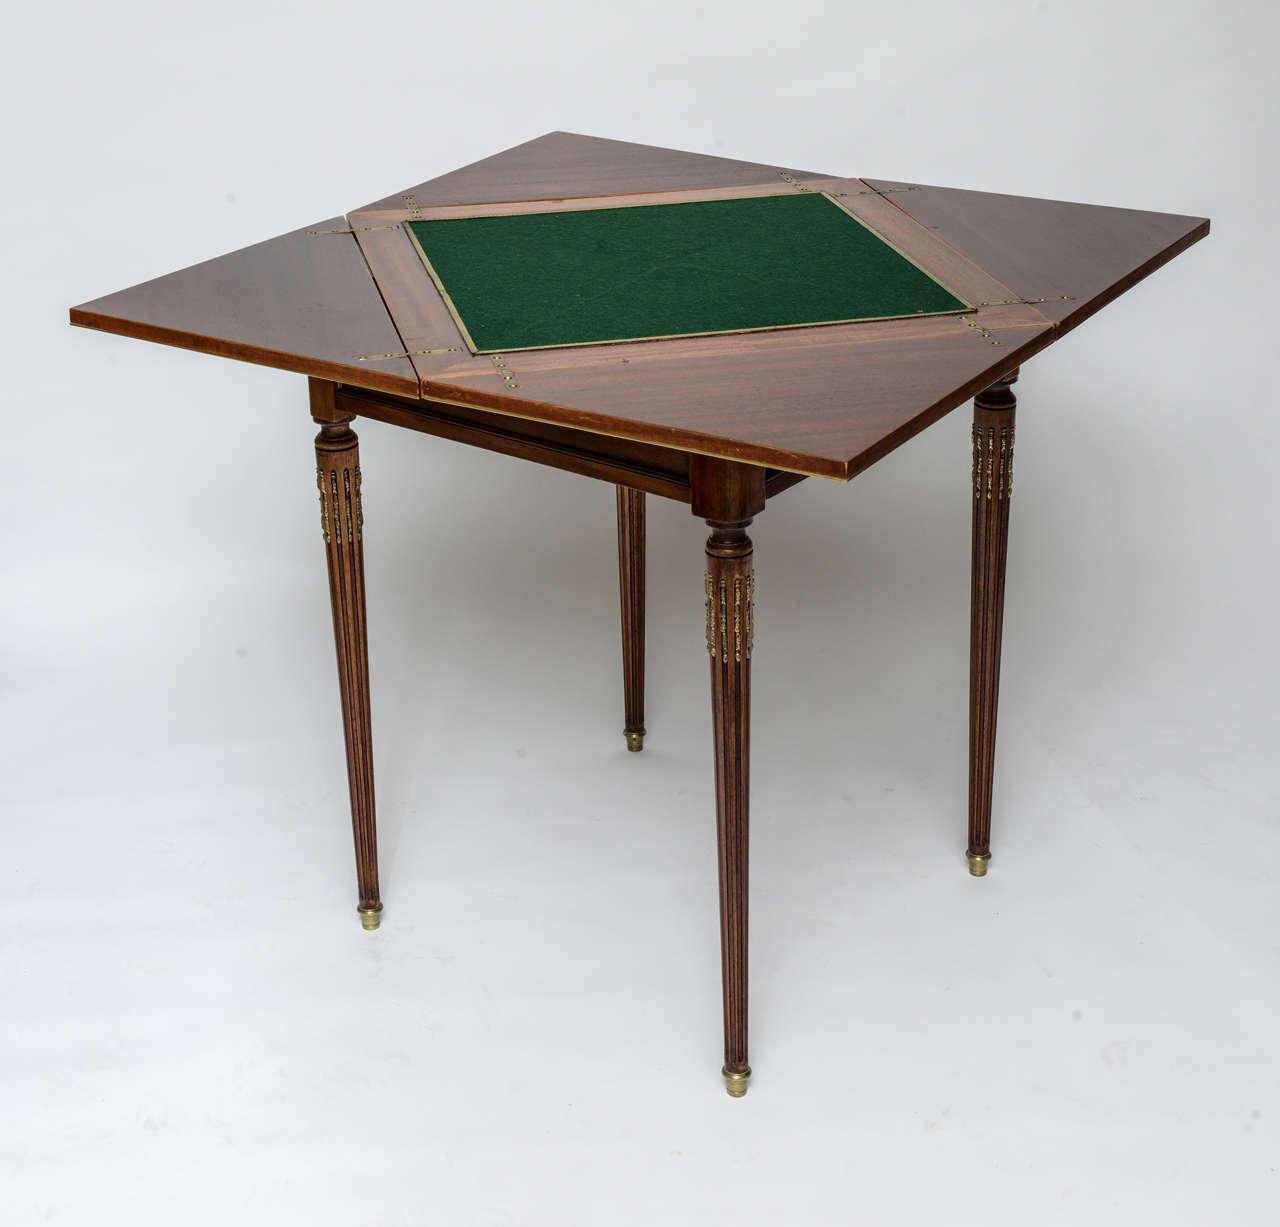 Louis xvi style envelope game table at 1stdibs for 11 in 1 game table